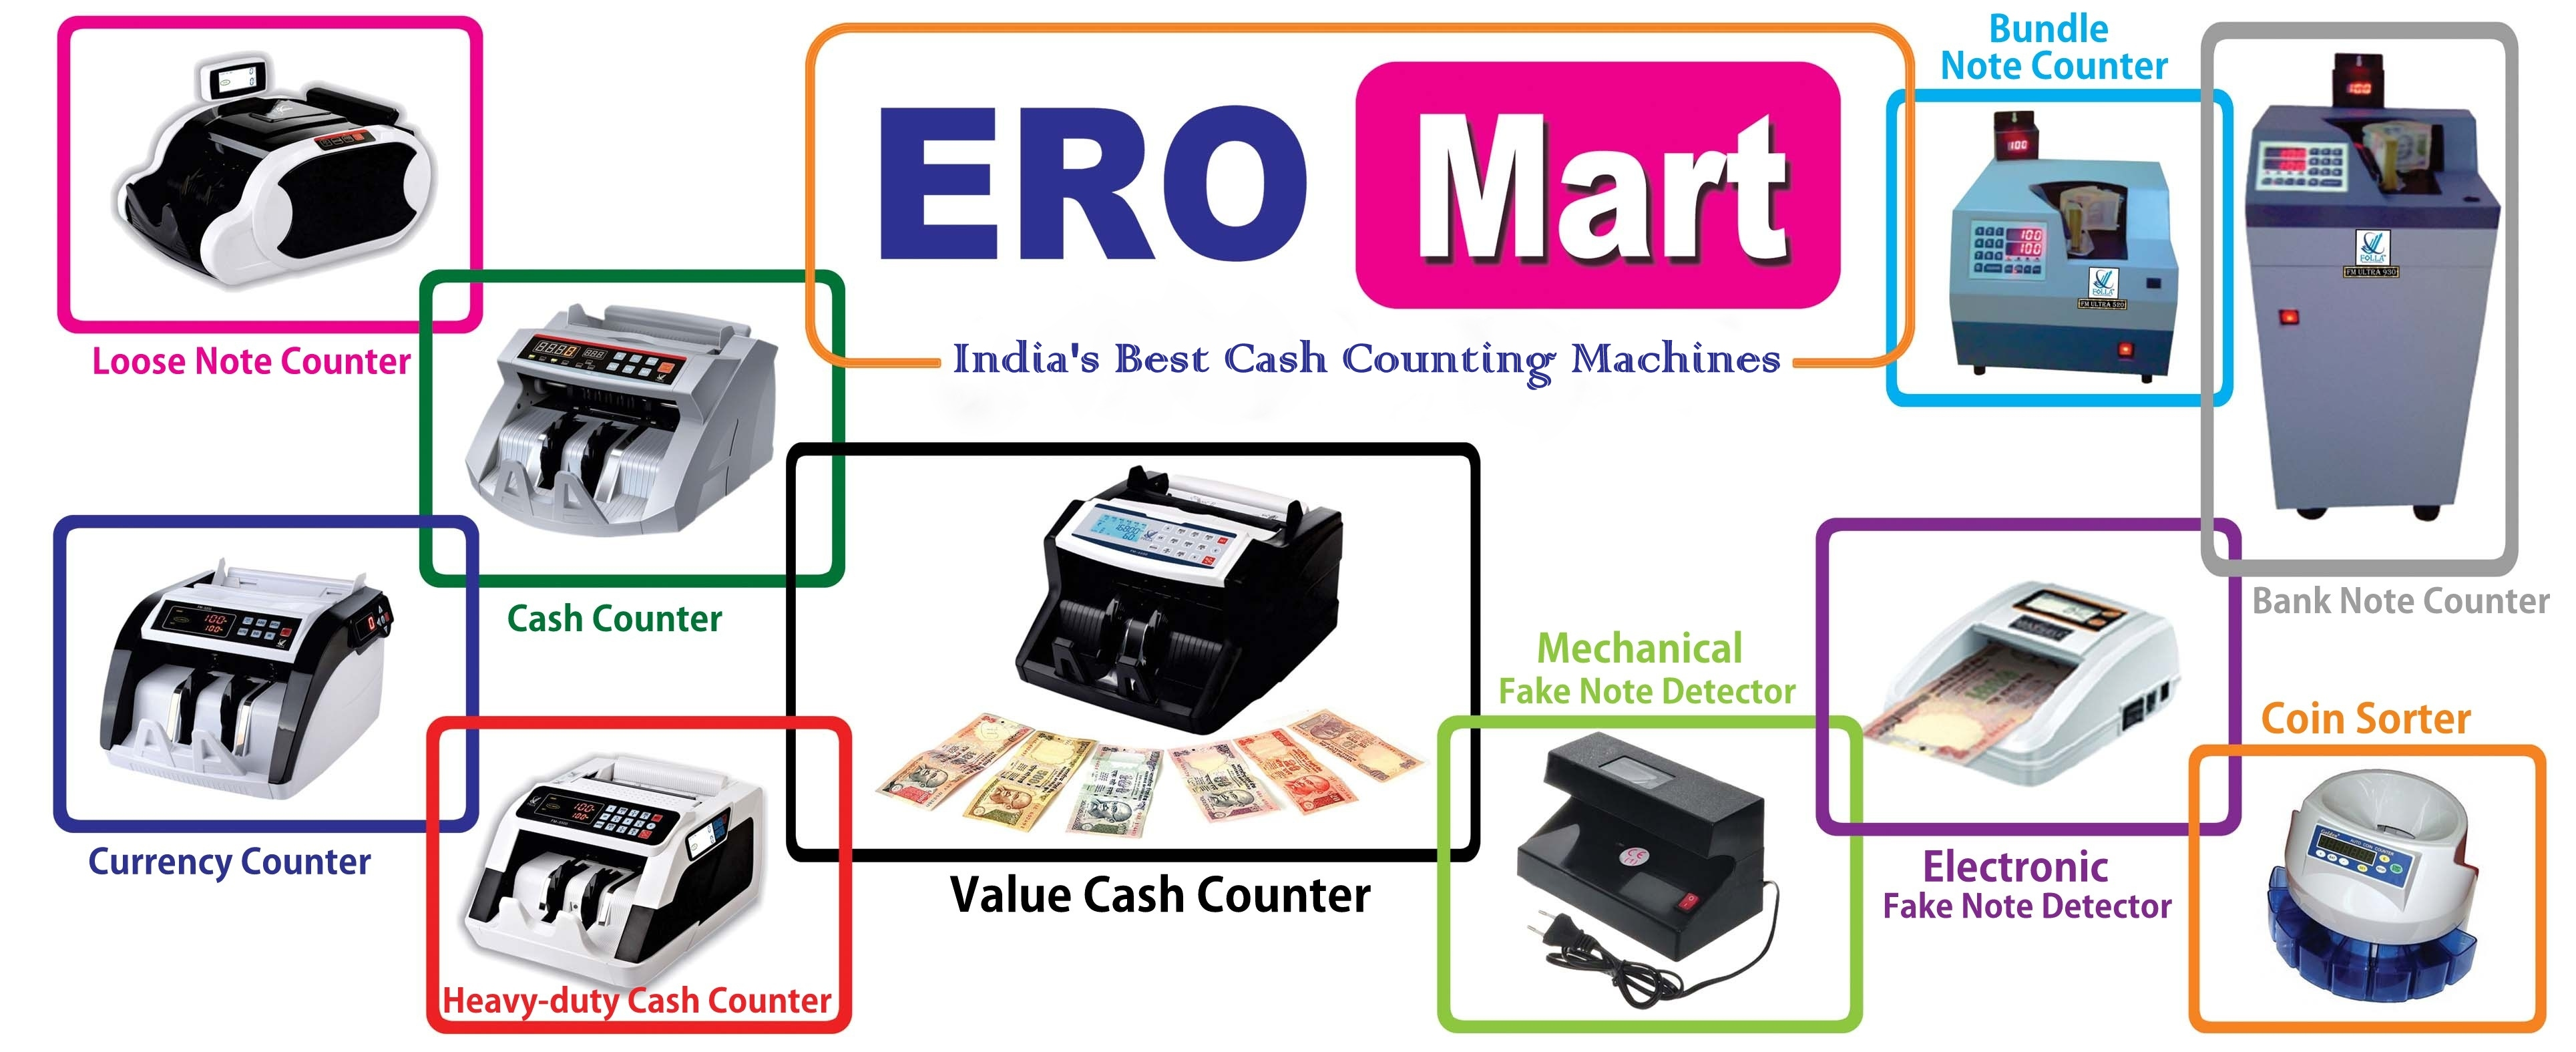 ERO MART banner - India's Best Cash Counting Machines in Tamil Nadu